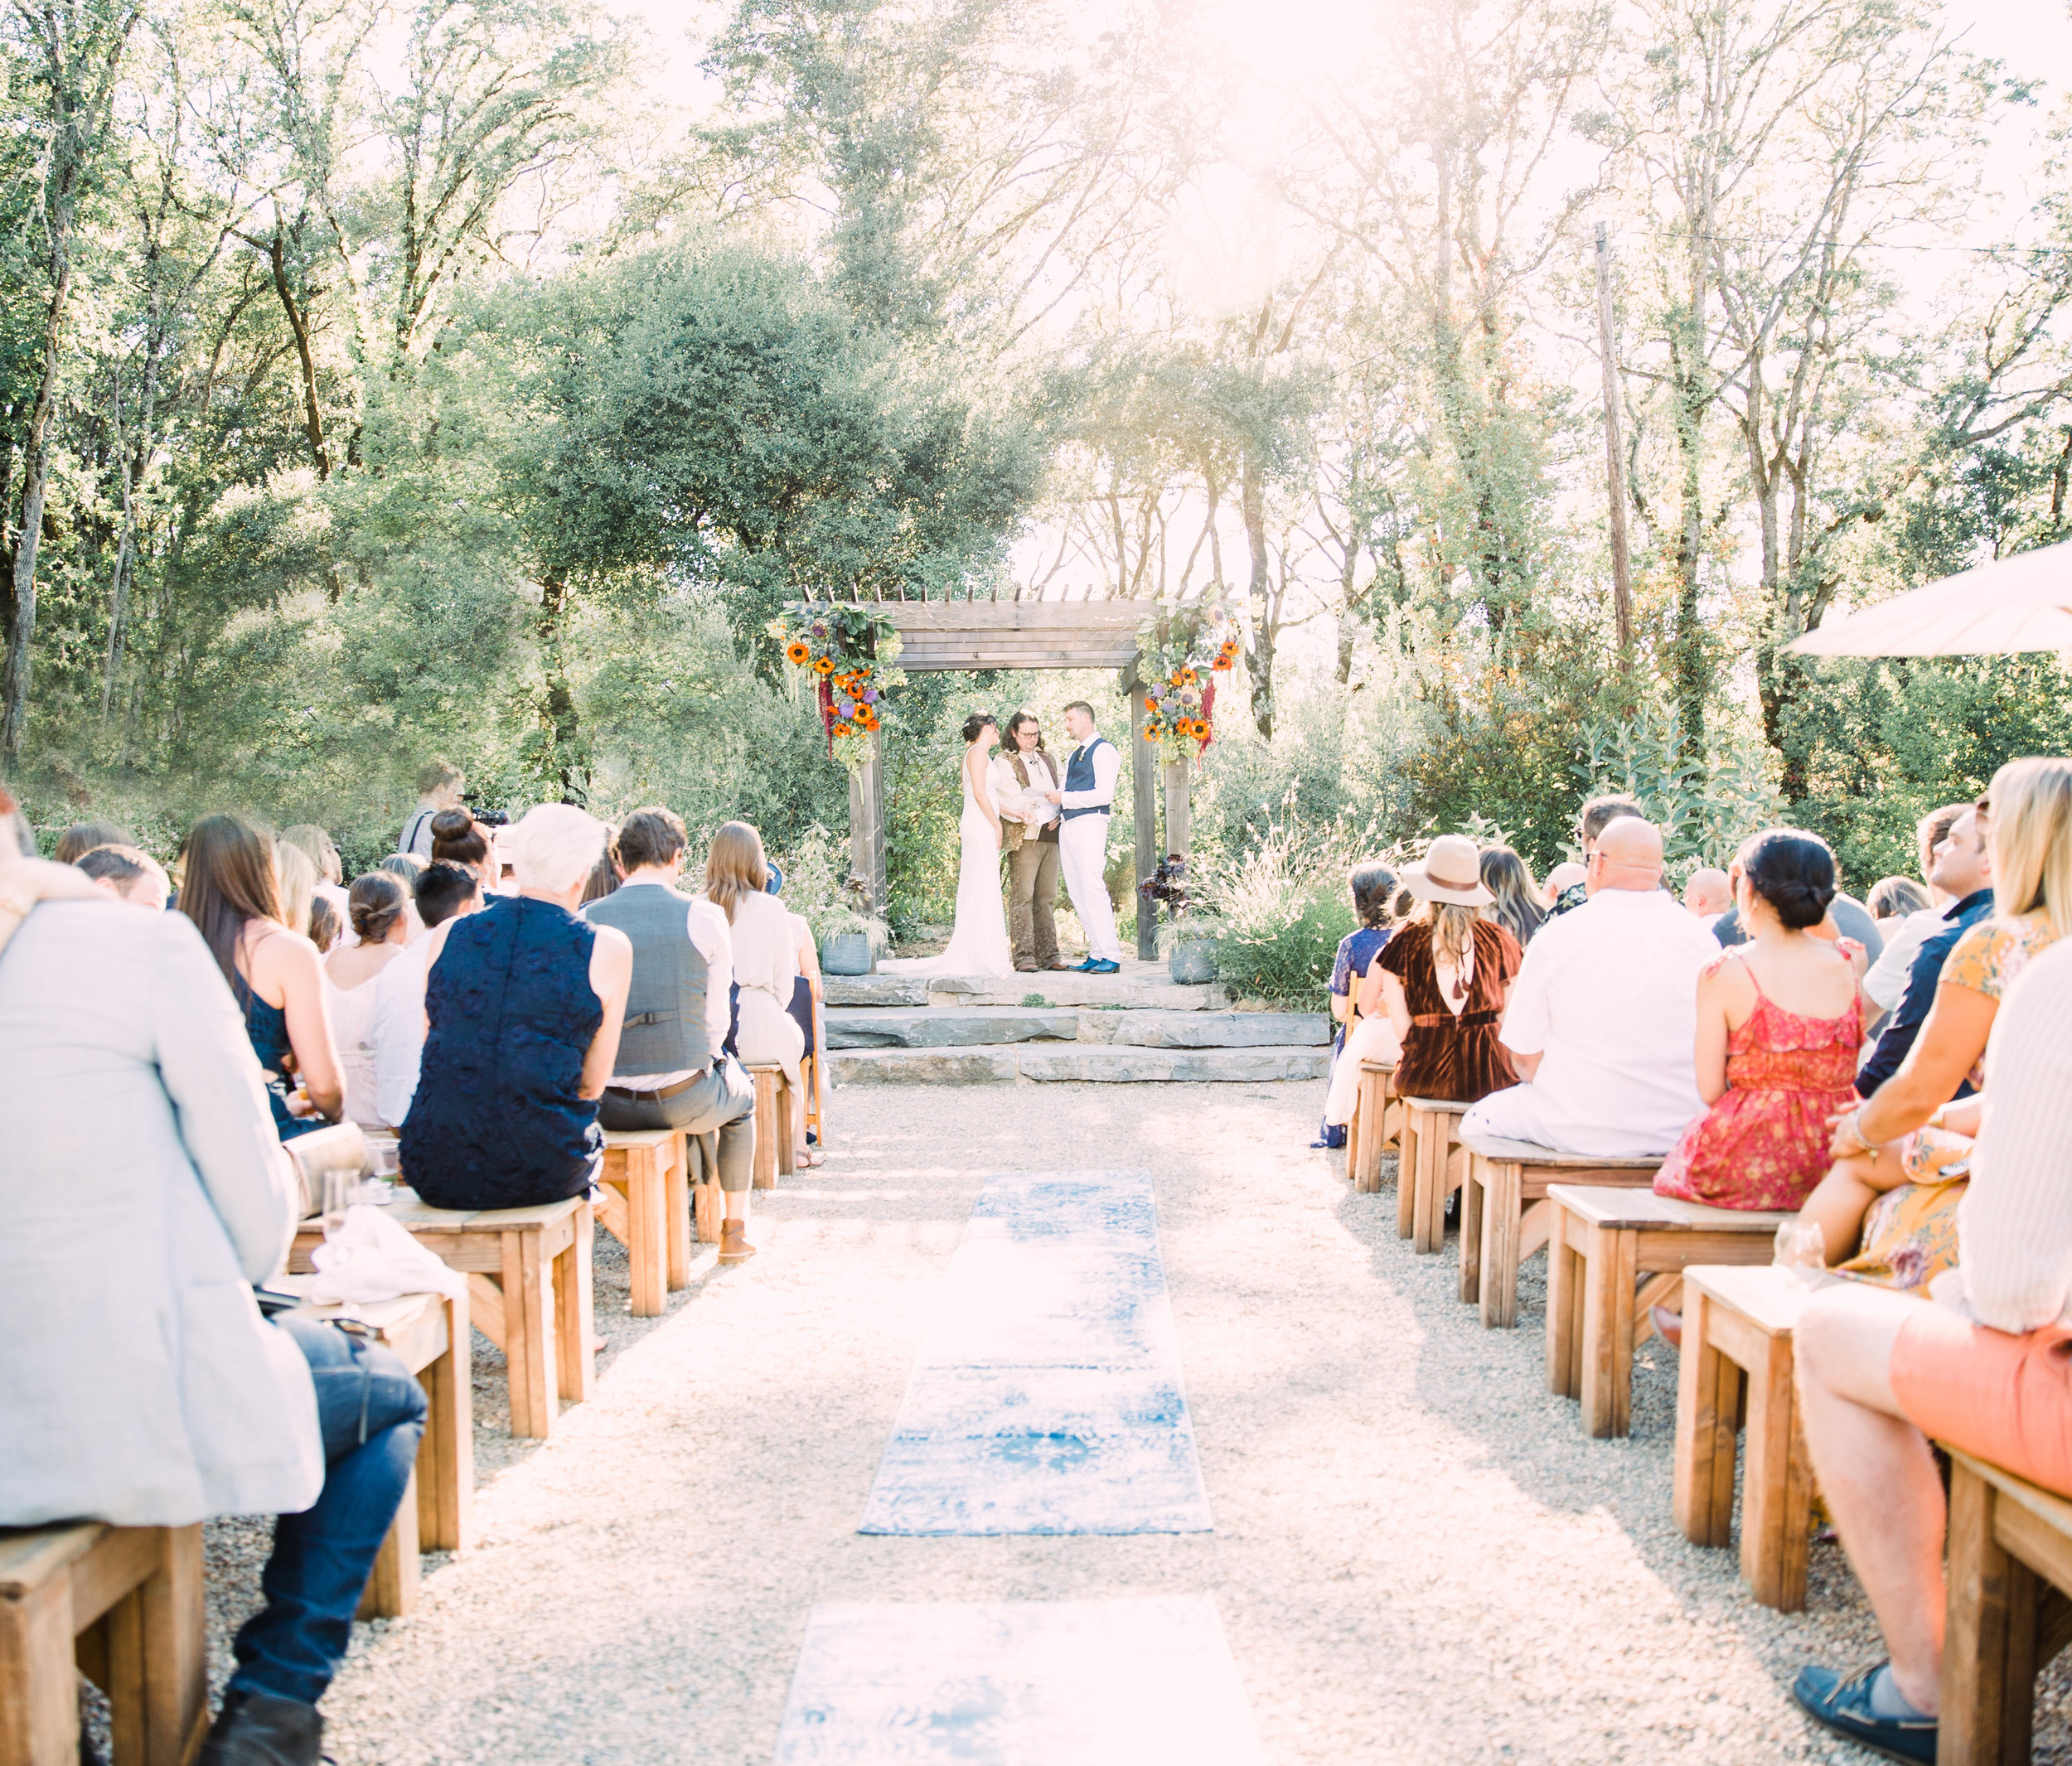 Epic wedding in Mendocino County with fairytale forest vibes